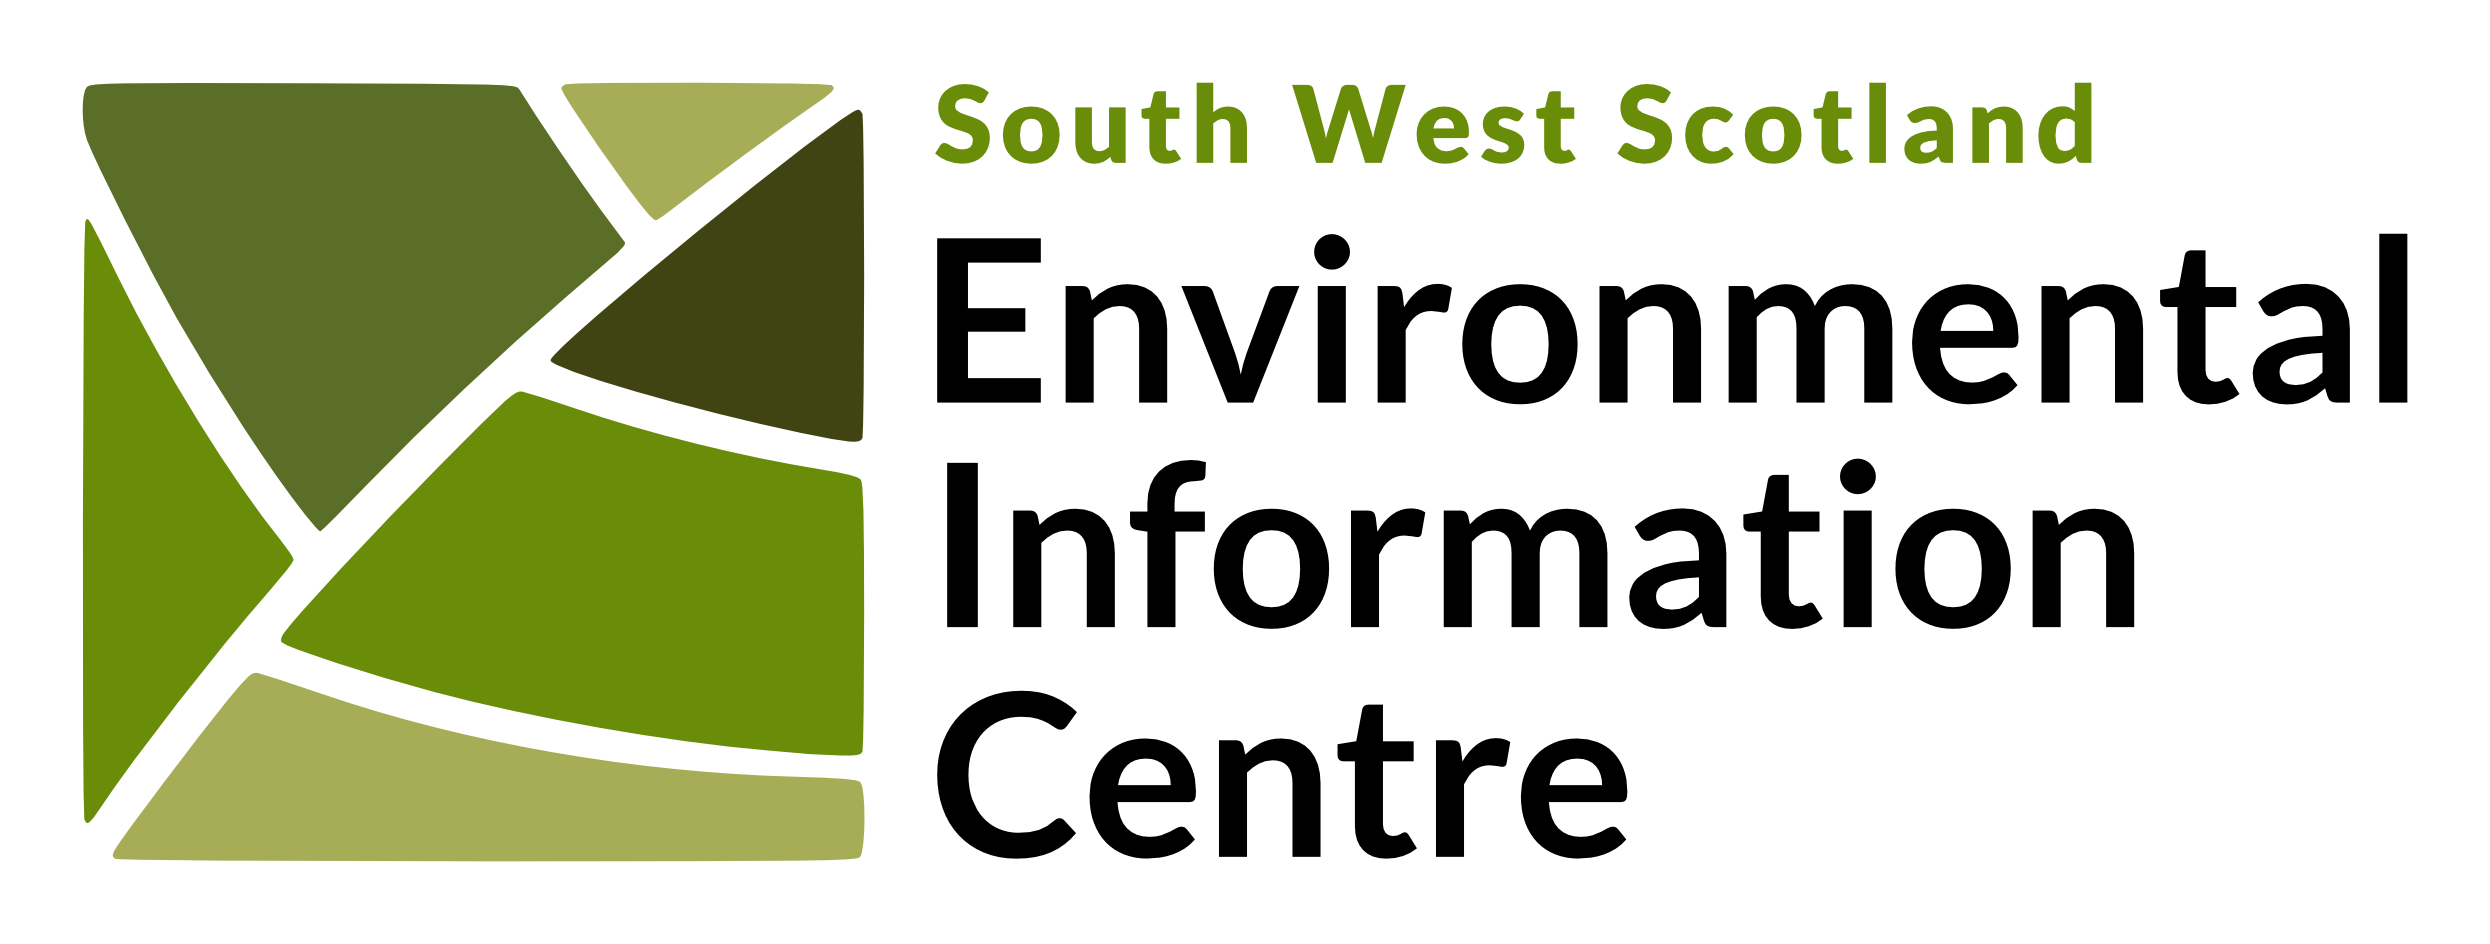 South West Scotland Environmental Information Centre (formerly DGERC) logo